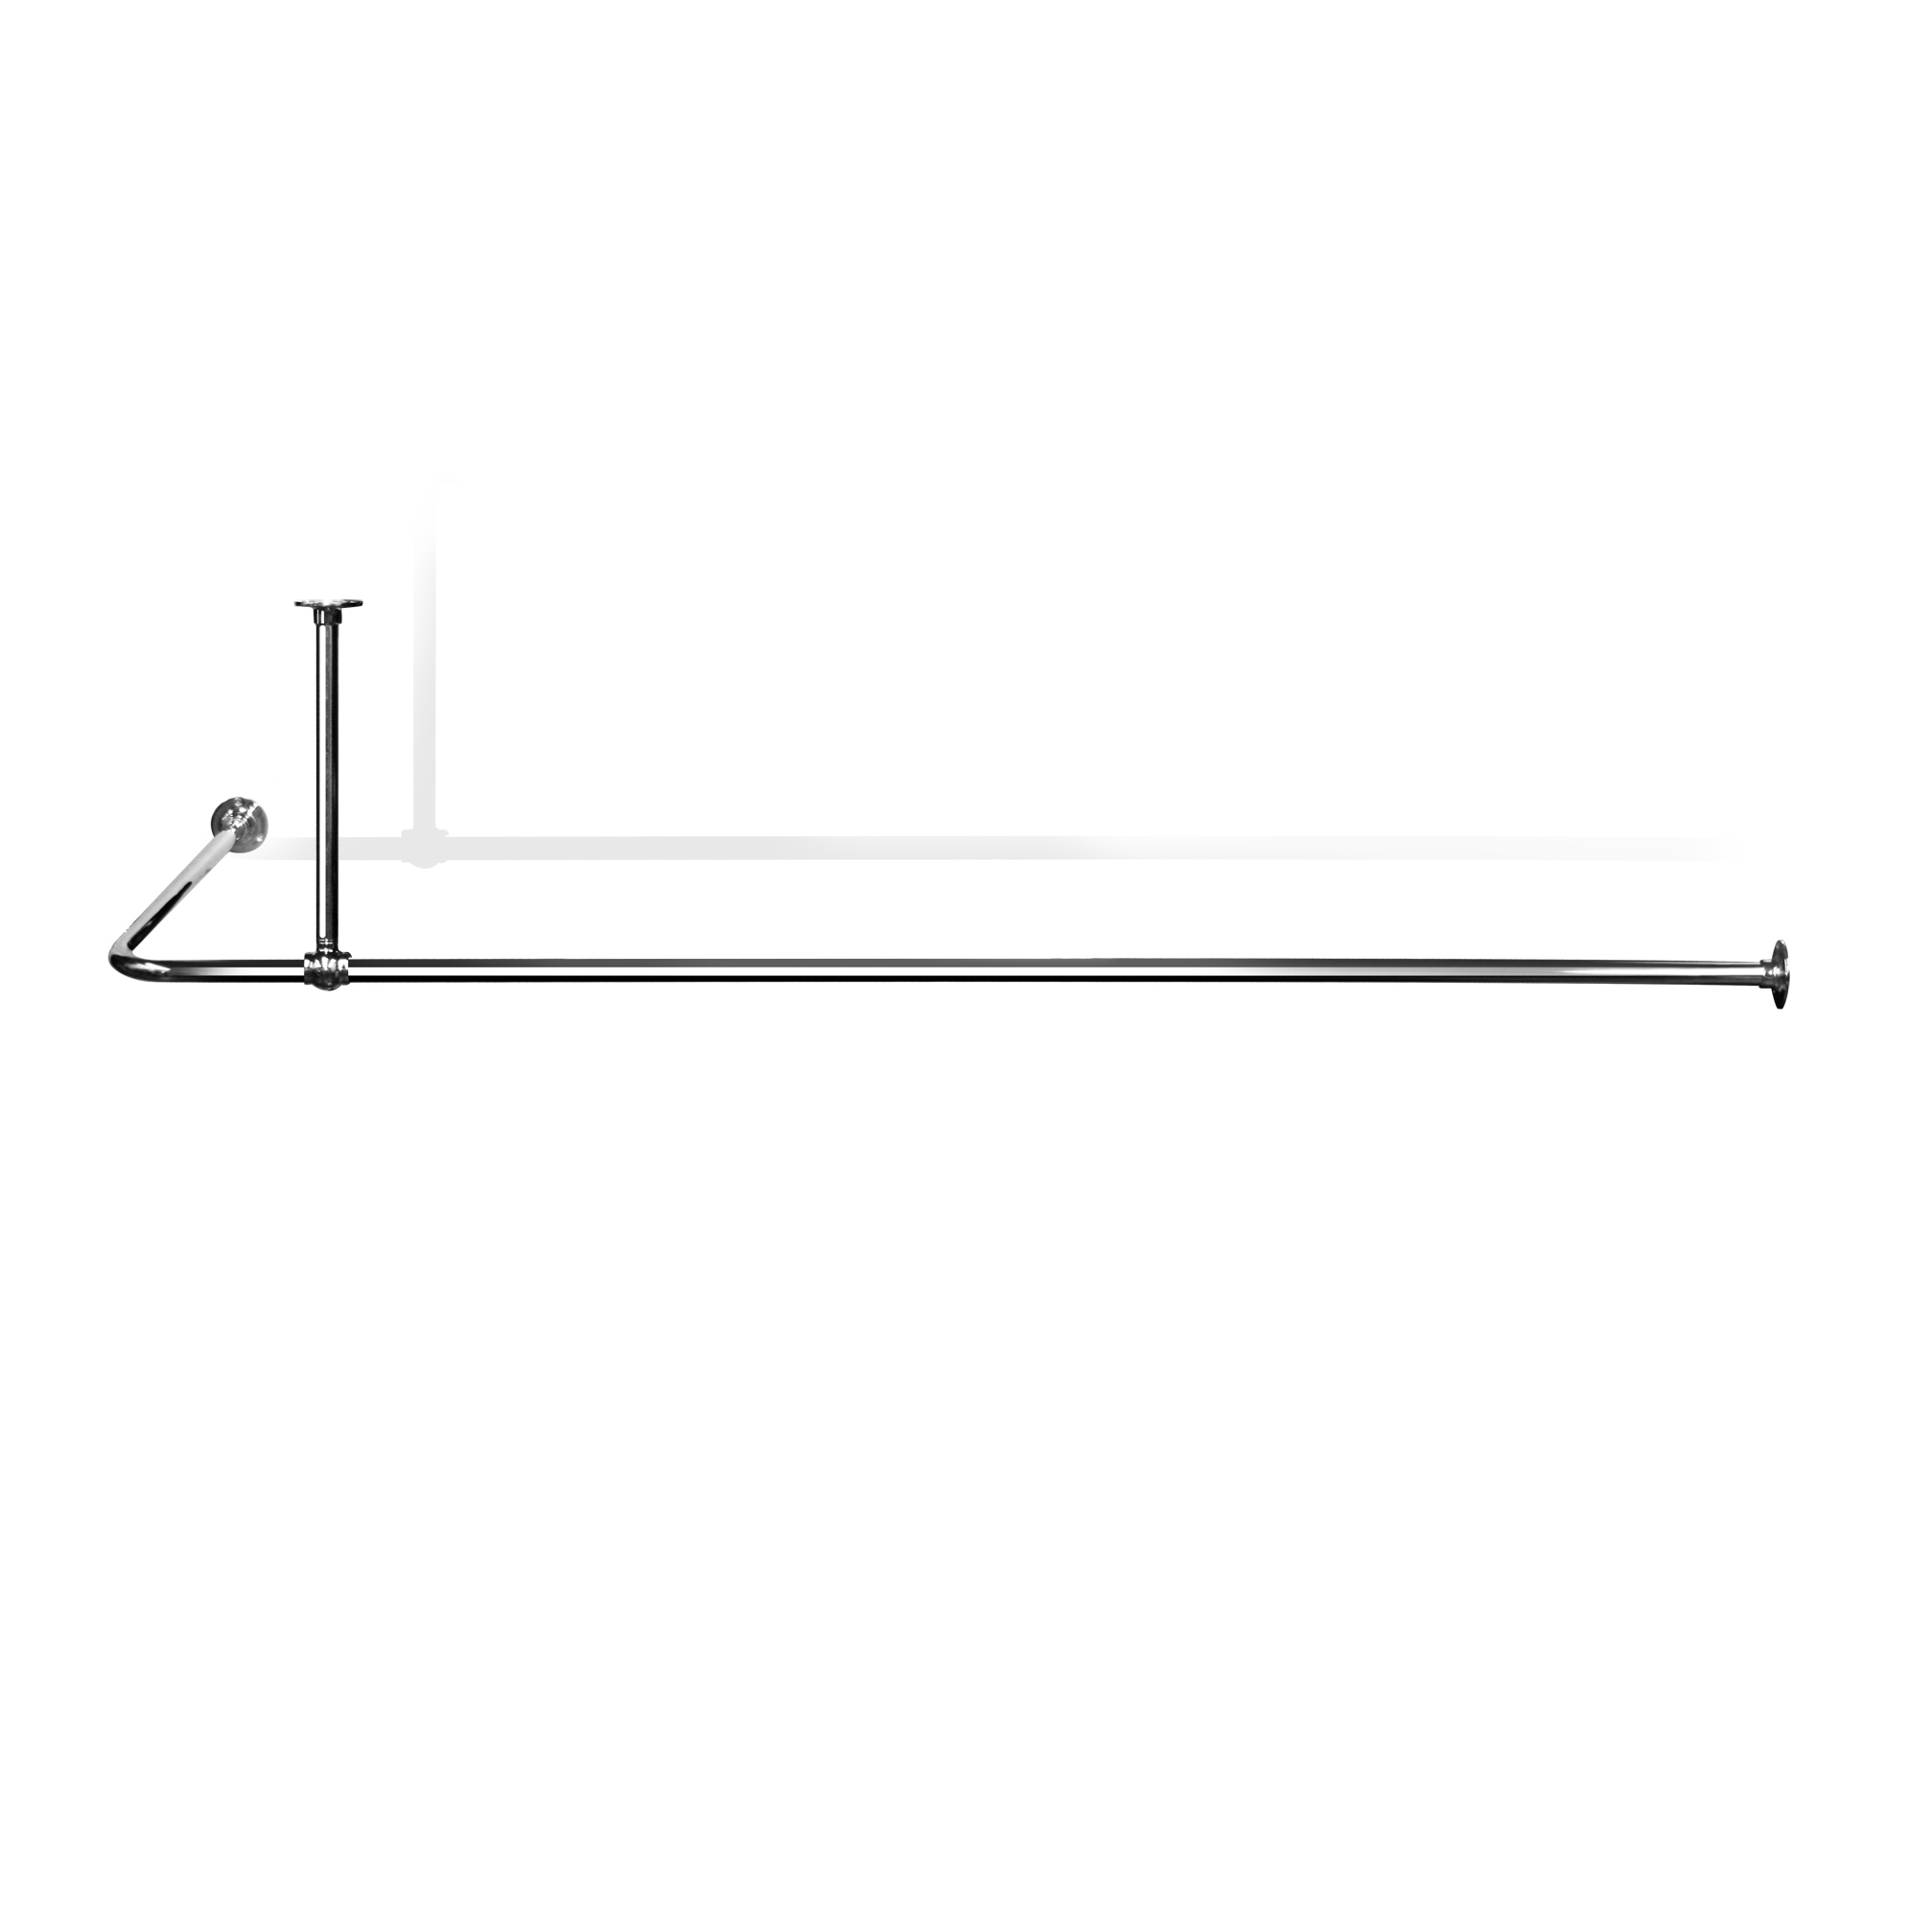 L Shaped Shower Curtain Rail LSR2 Shower Curtain Rails from ...